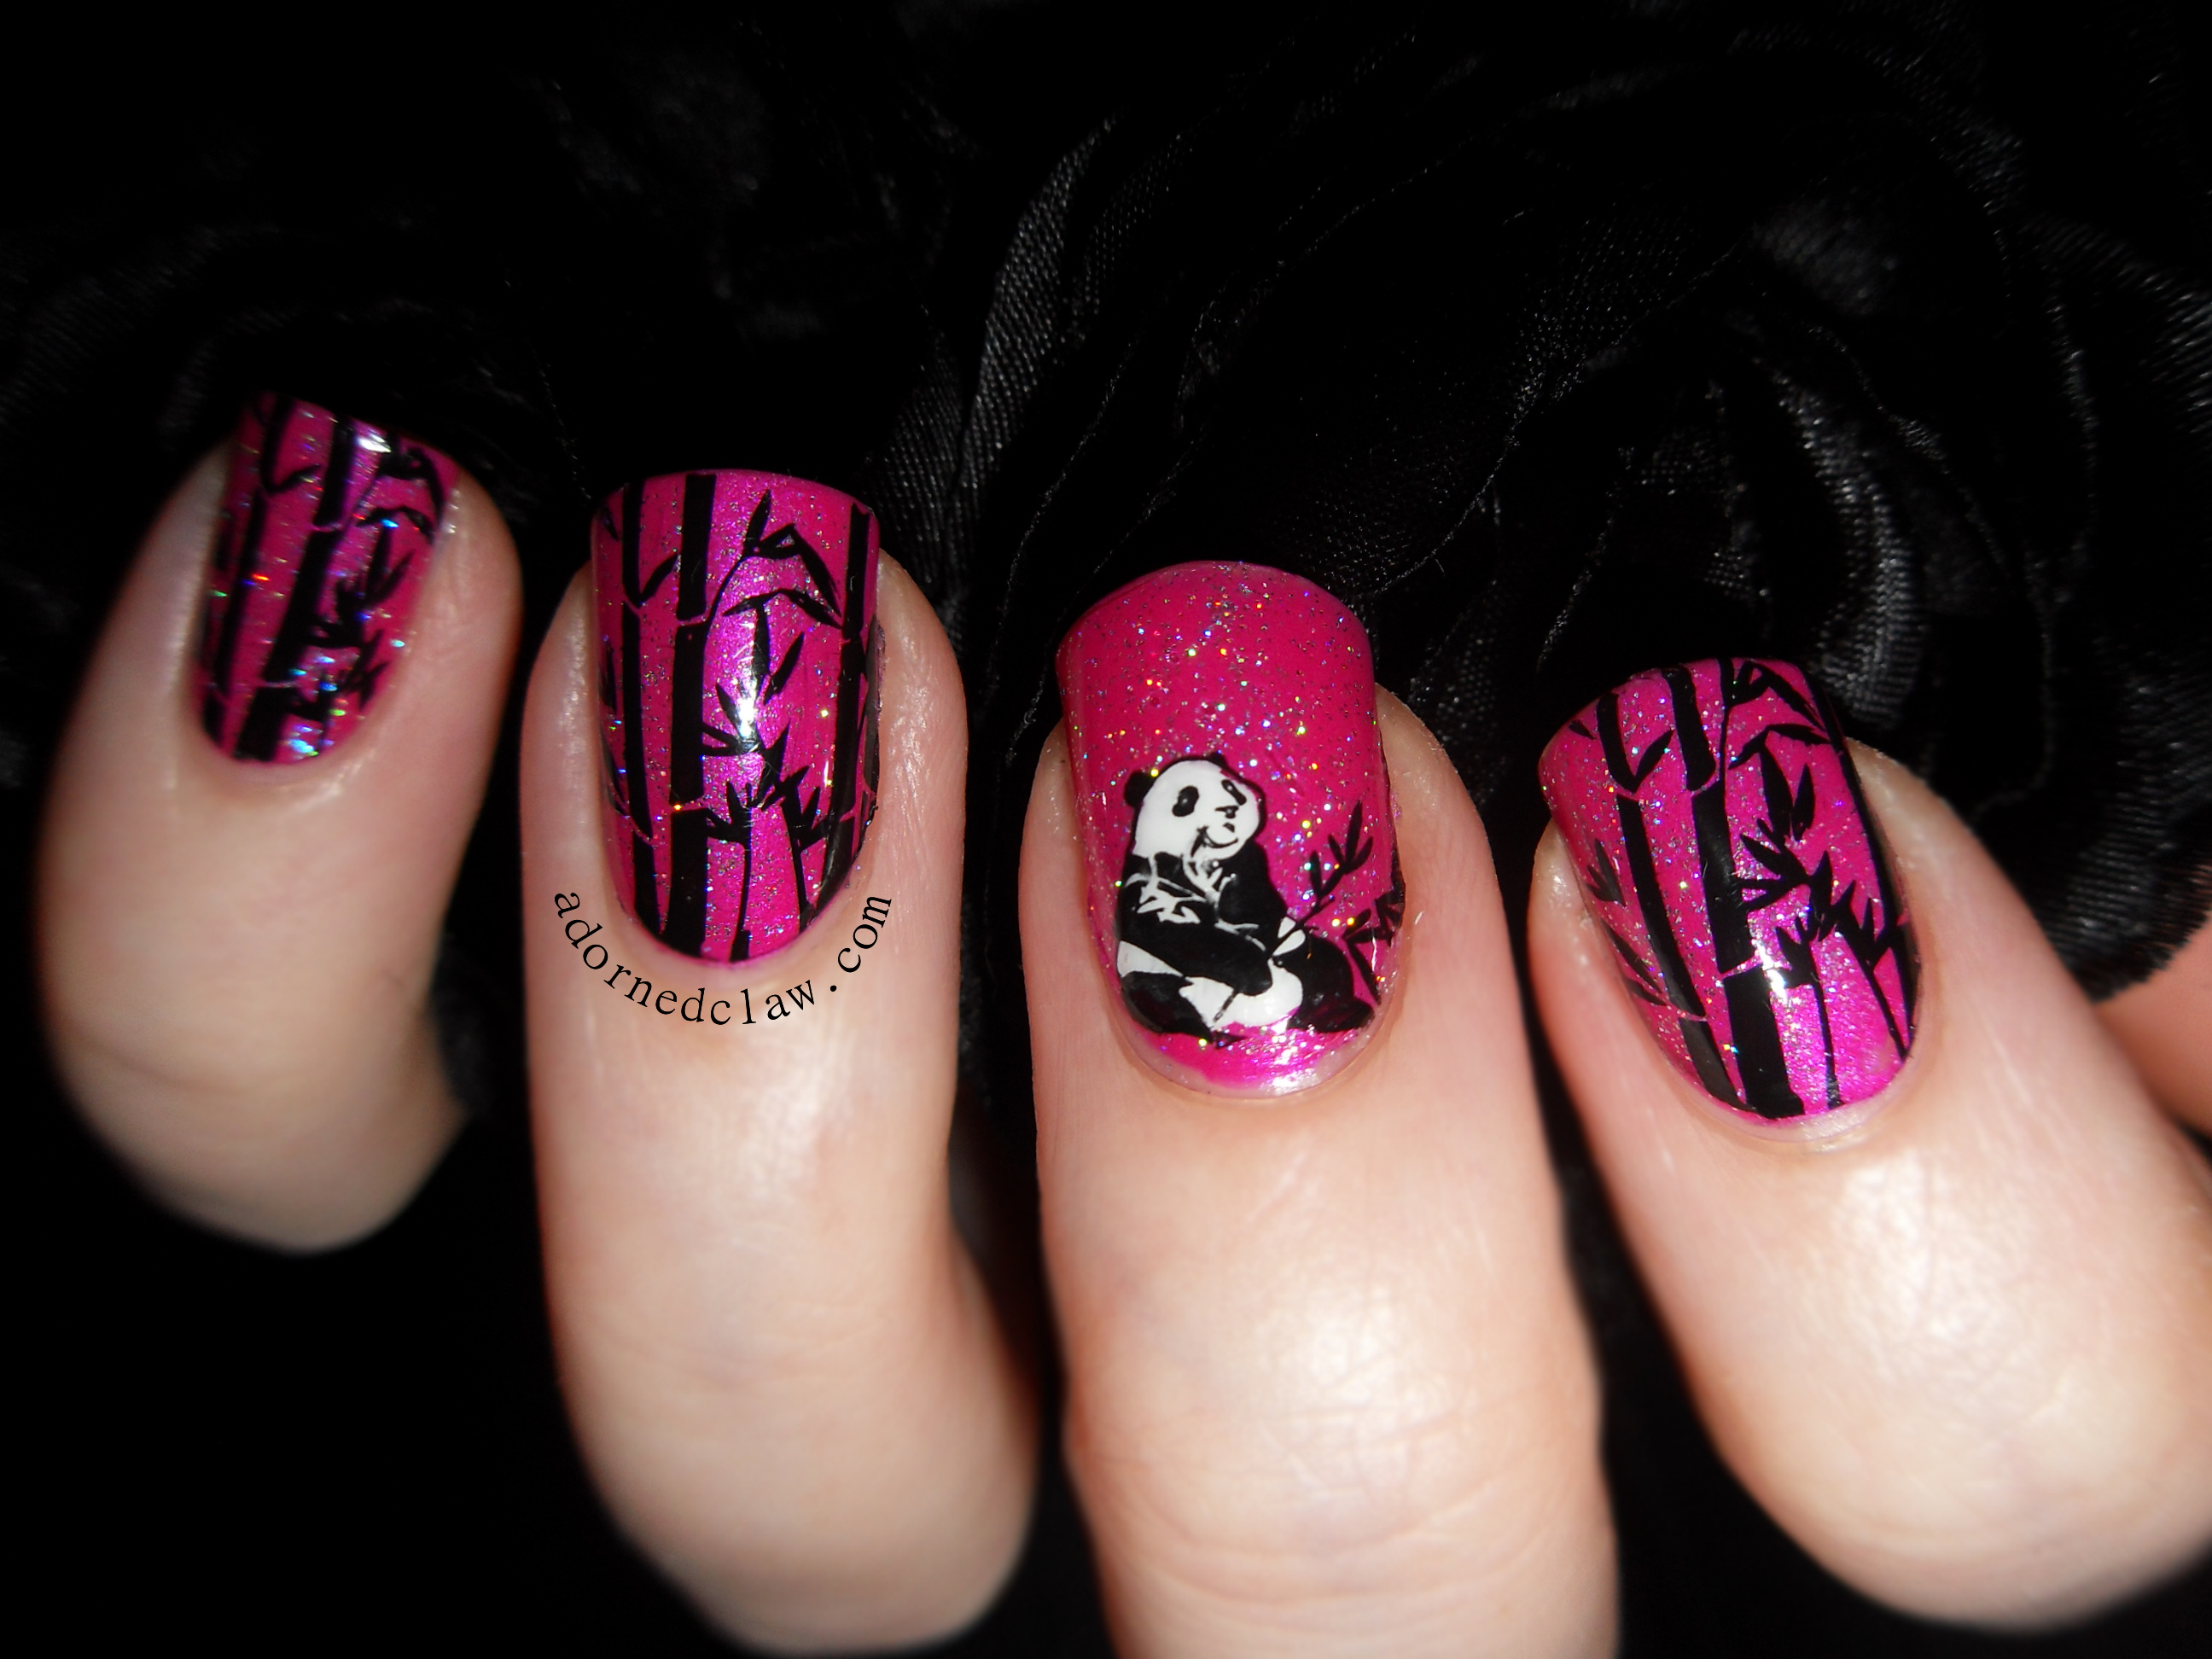 Pink panda stamped decal nail art the adorned claw panda nails prinsesfo Image collections